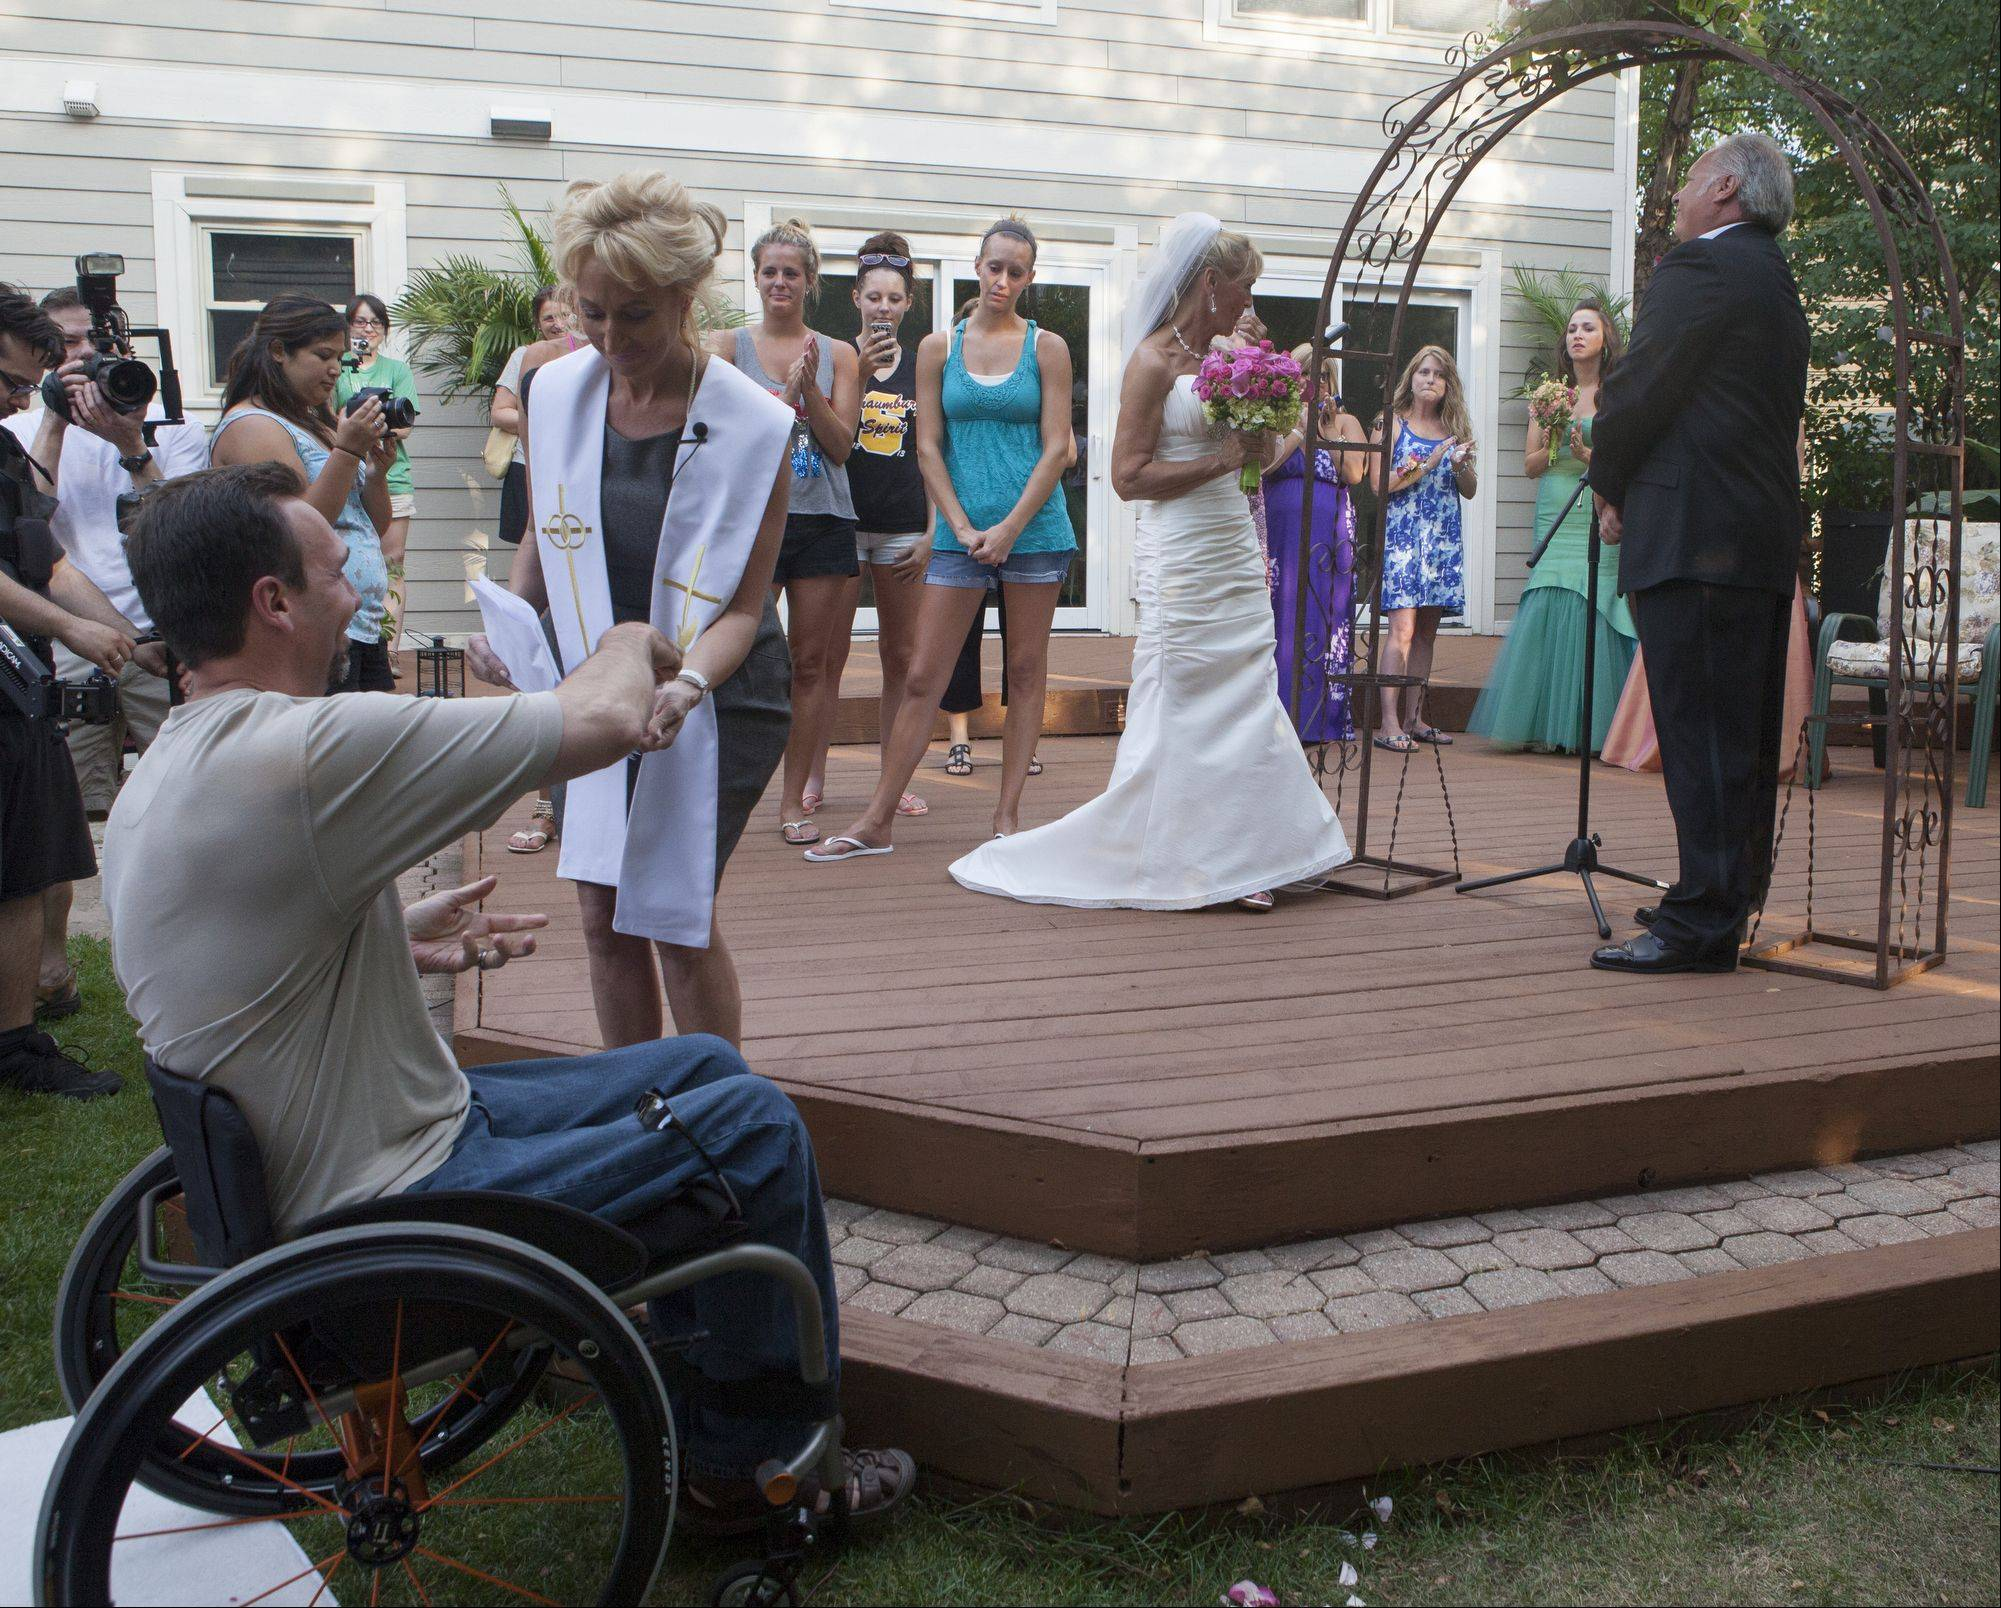 John Schomer, a friend of Libby Watkins and Mike Conjura, gives the wedding rings to Kim Panzarella who helped set up the event.